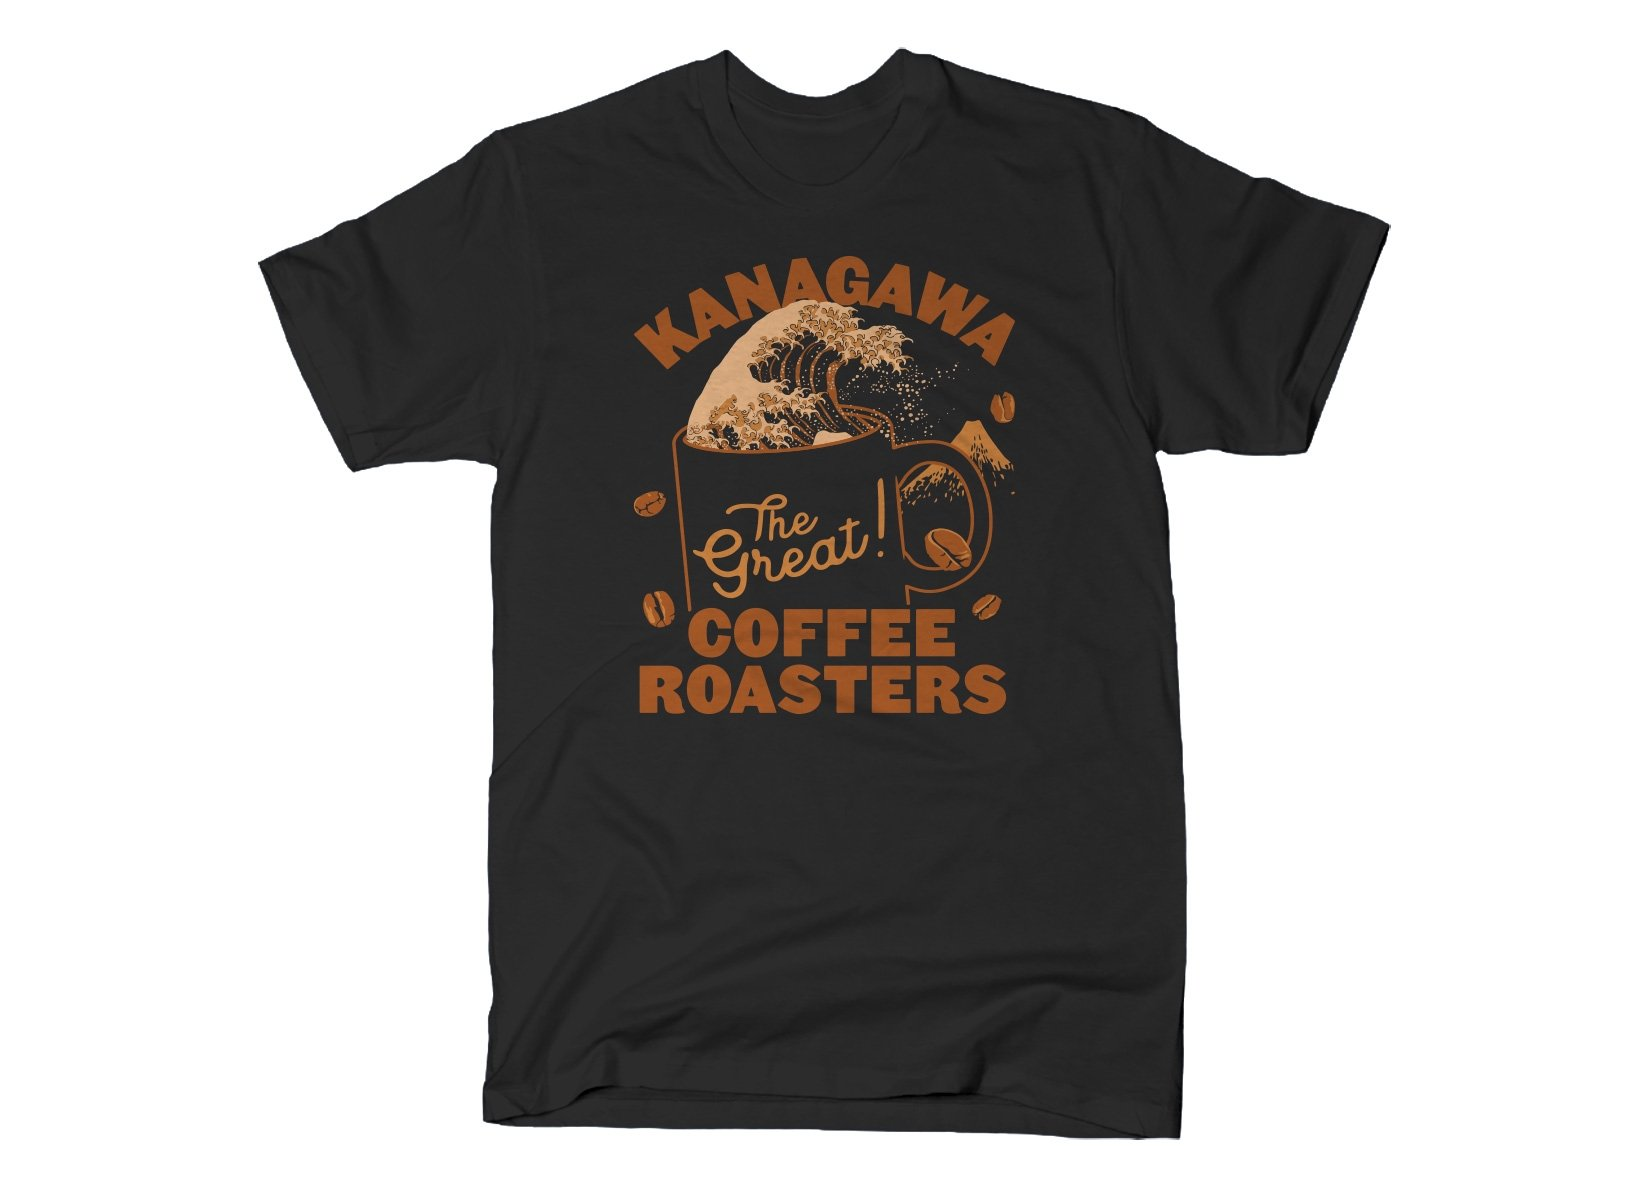 Kanagawa Coffee Roasters on Mens T-Shirt